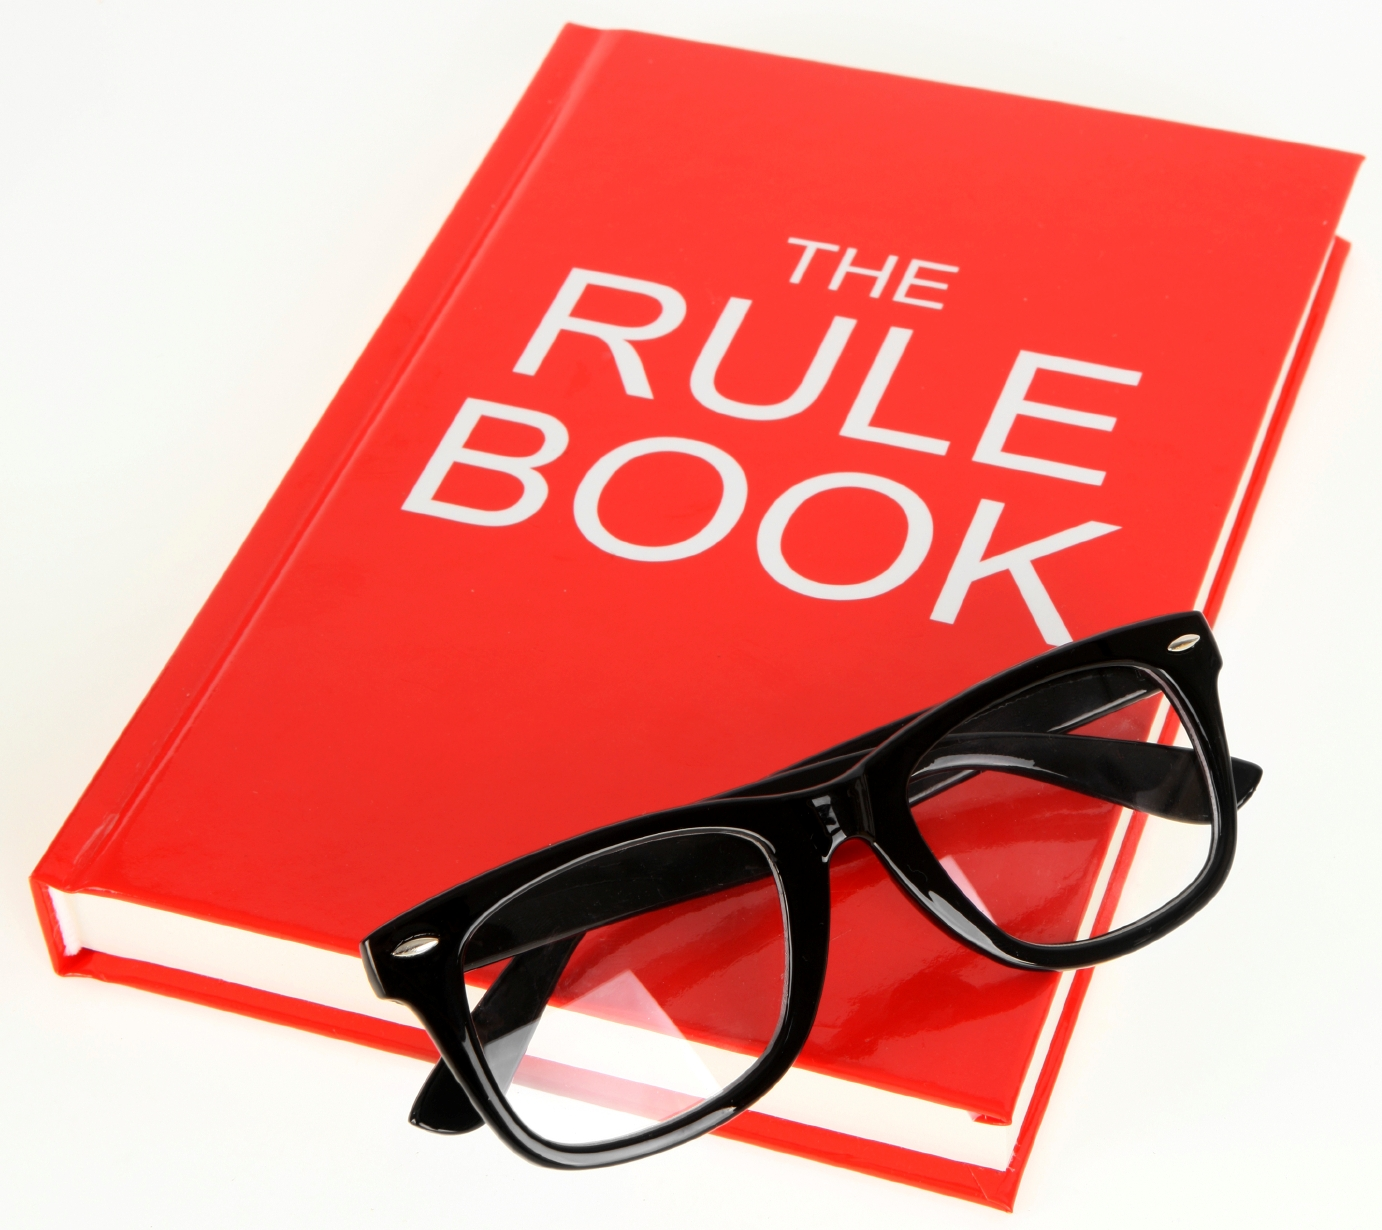 Free Cliparts Rule Book, Download Free Clip Art, Free Clip.